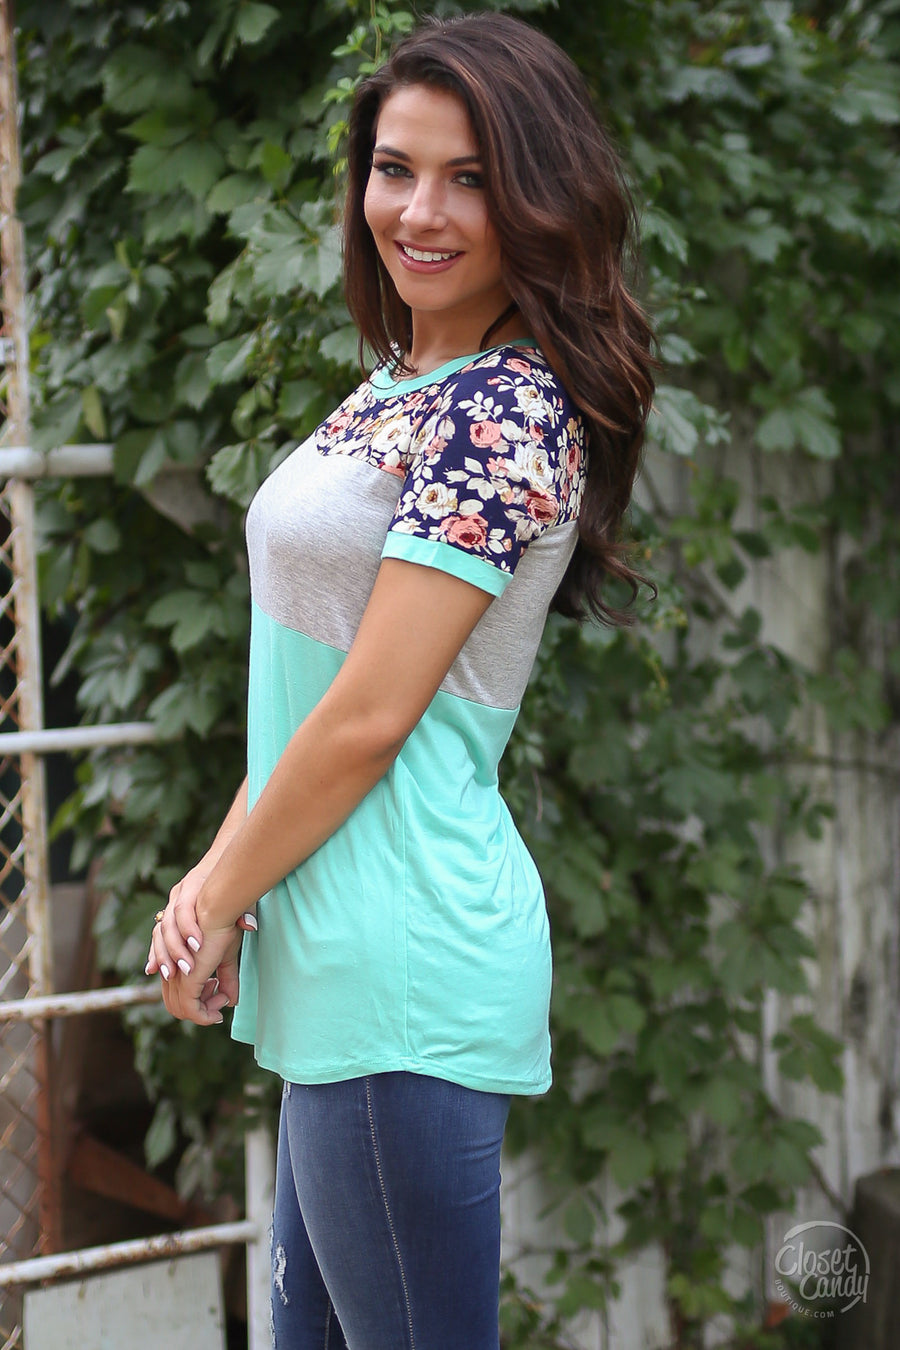 Looking At You Top - Mint and navy color block pattern top, front, Closet Candy Boutique